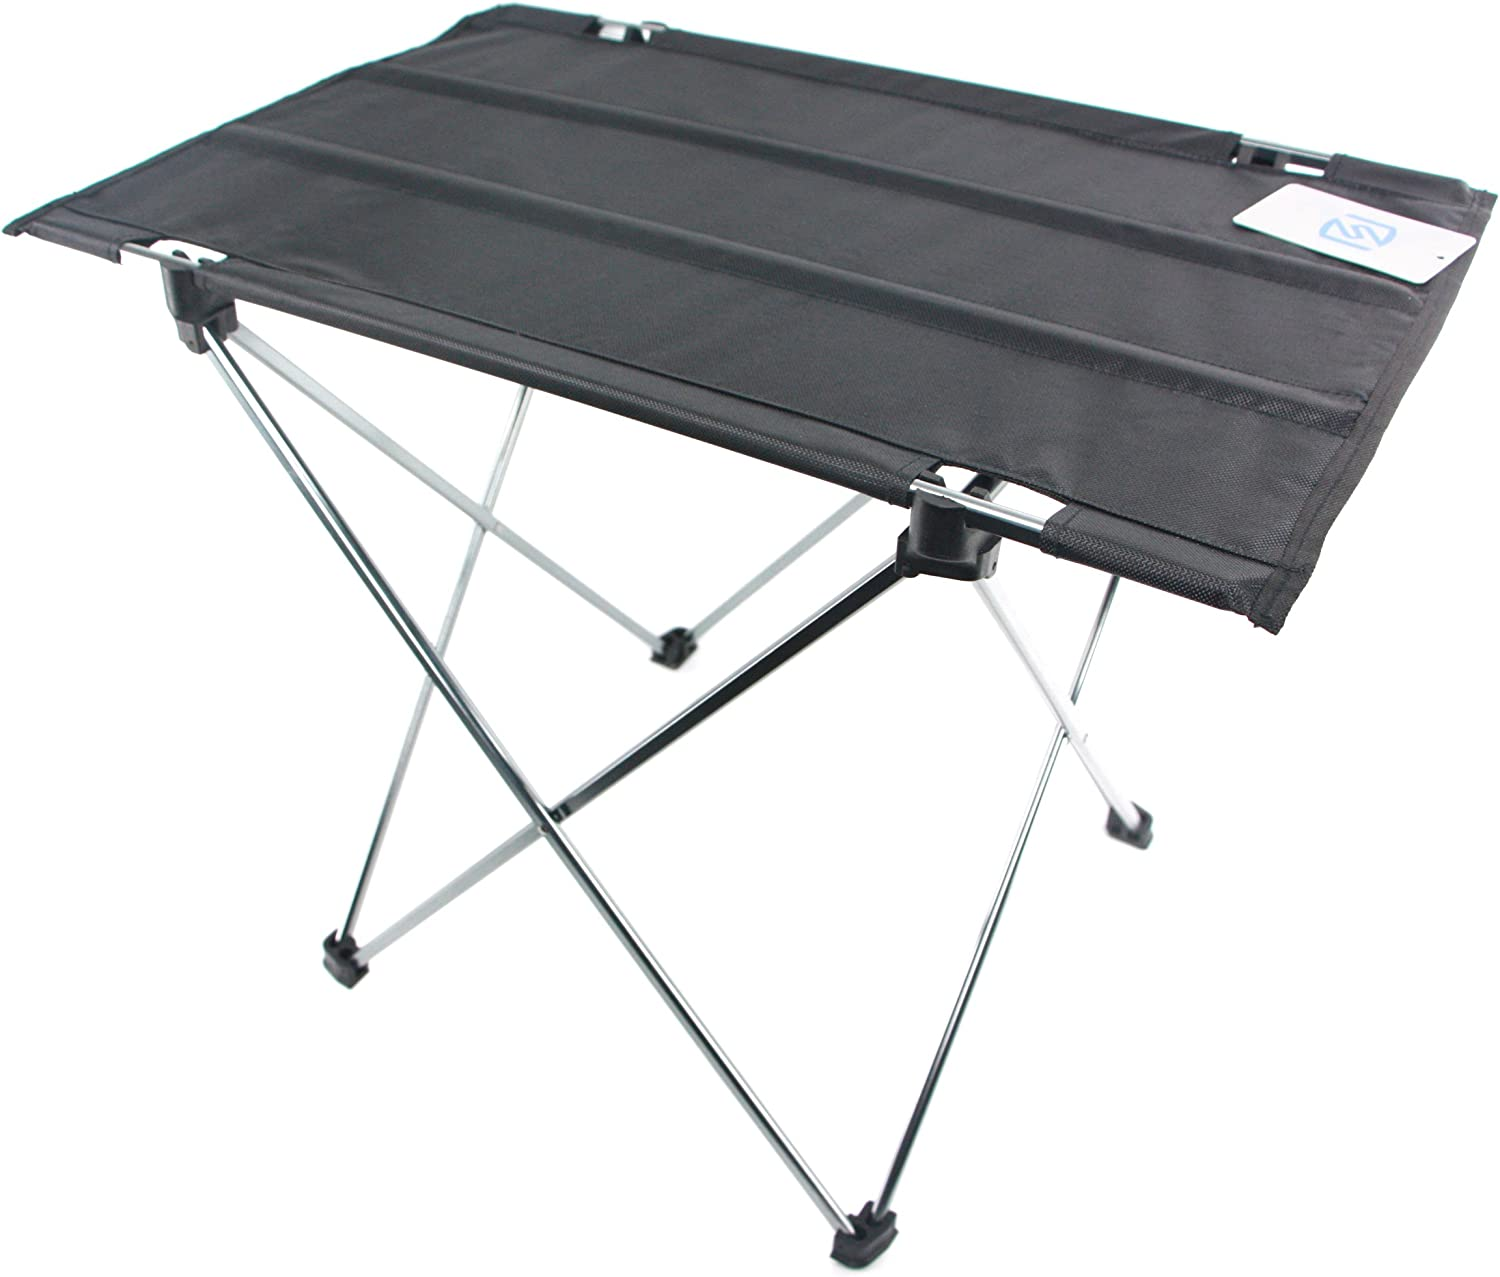 ASHVIEE Easy Table, Ultralight Camping Table, Portable Light Weight Folding for Outdoor Activities Black